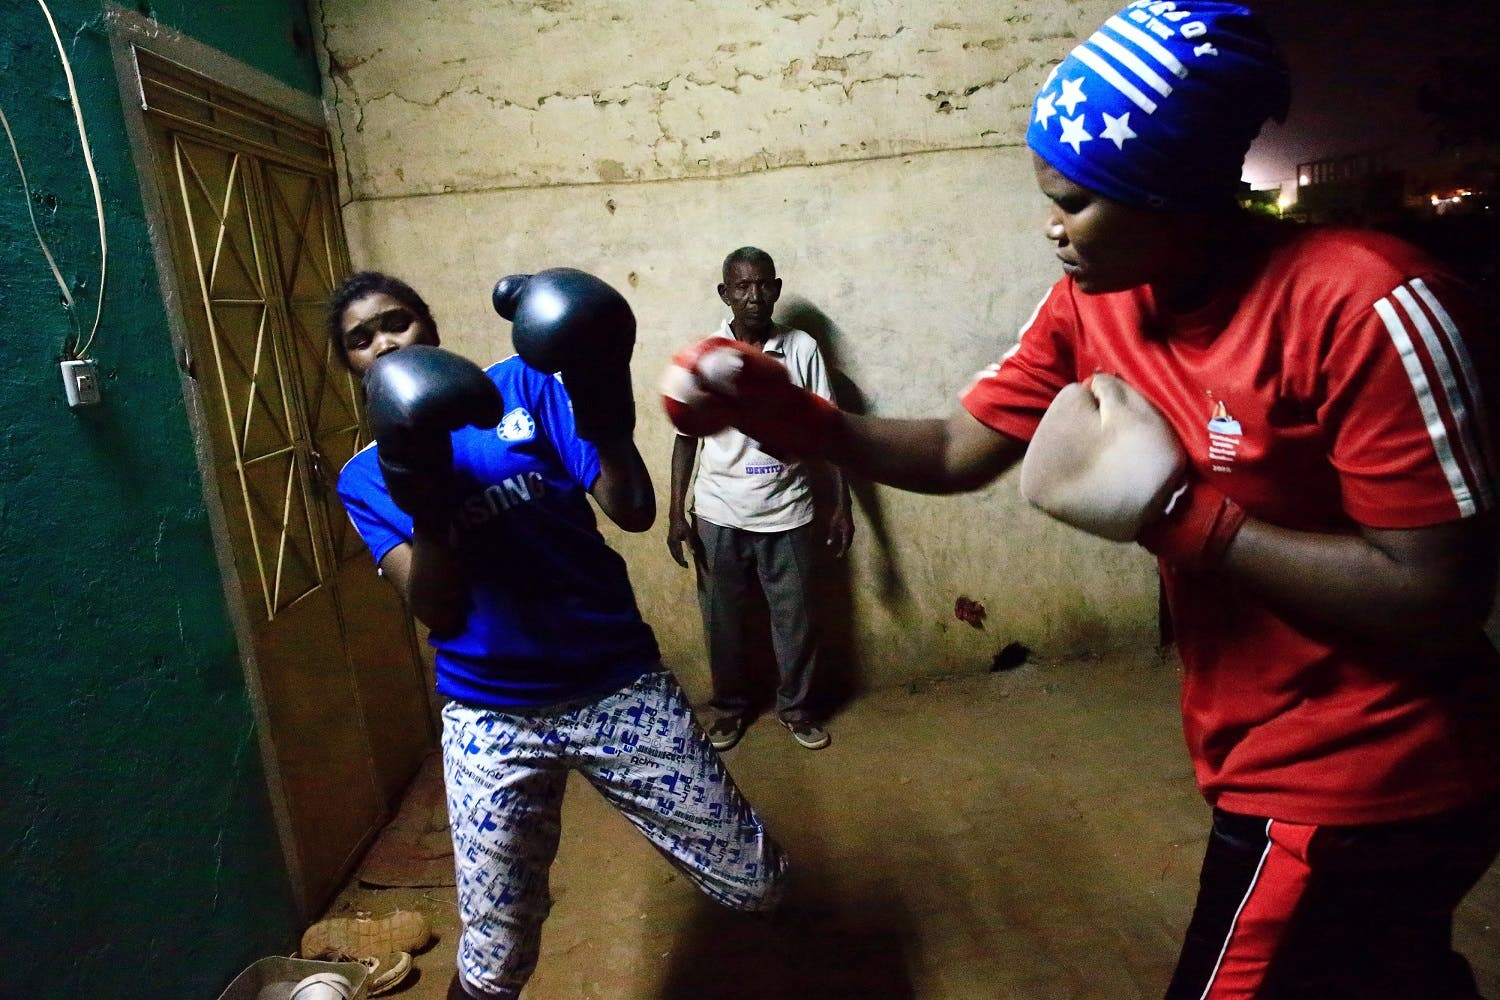 Sahar Mohamed Al Dooma (R), 26, challenges Saraa Mutawkil, 18, during boxing practice at Al Rabie club in Omdurman May 10, 2016. REUTERS